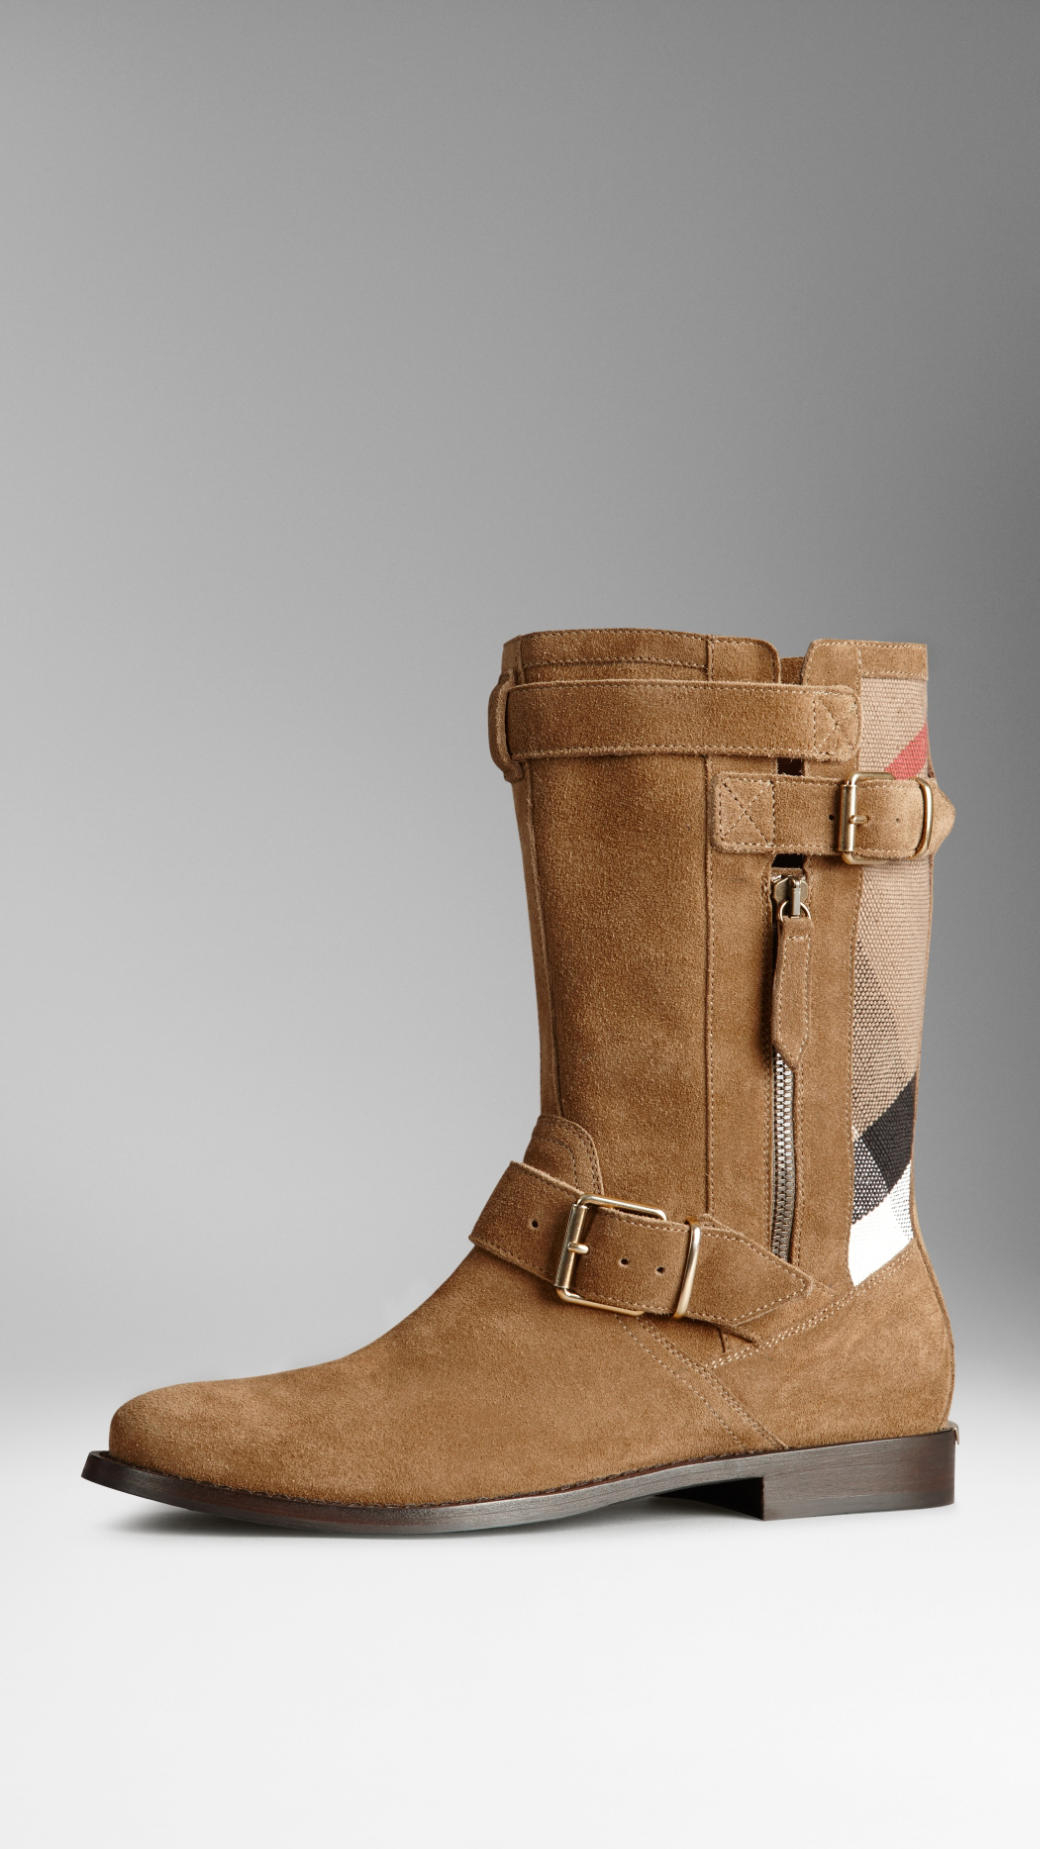 burberry check panel suede boots in brown light oak brown